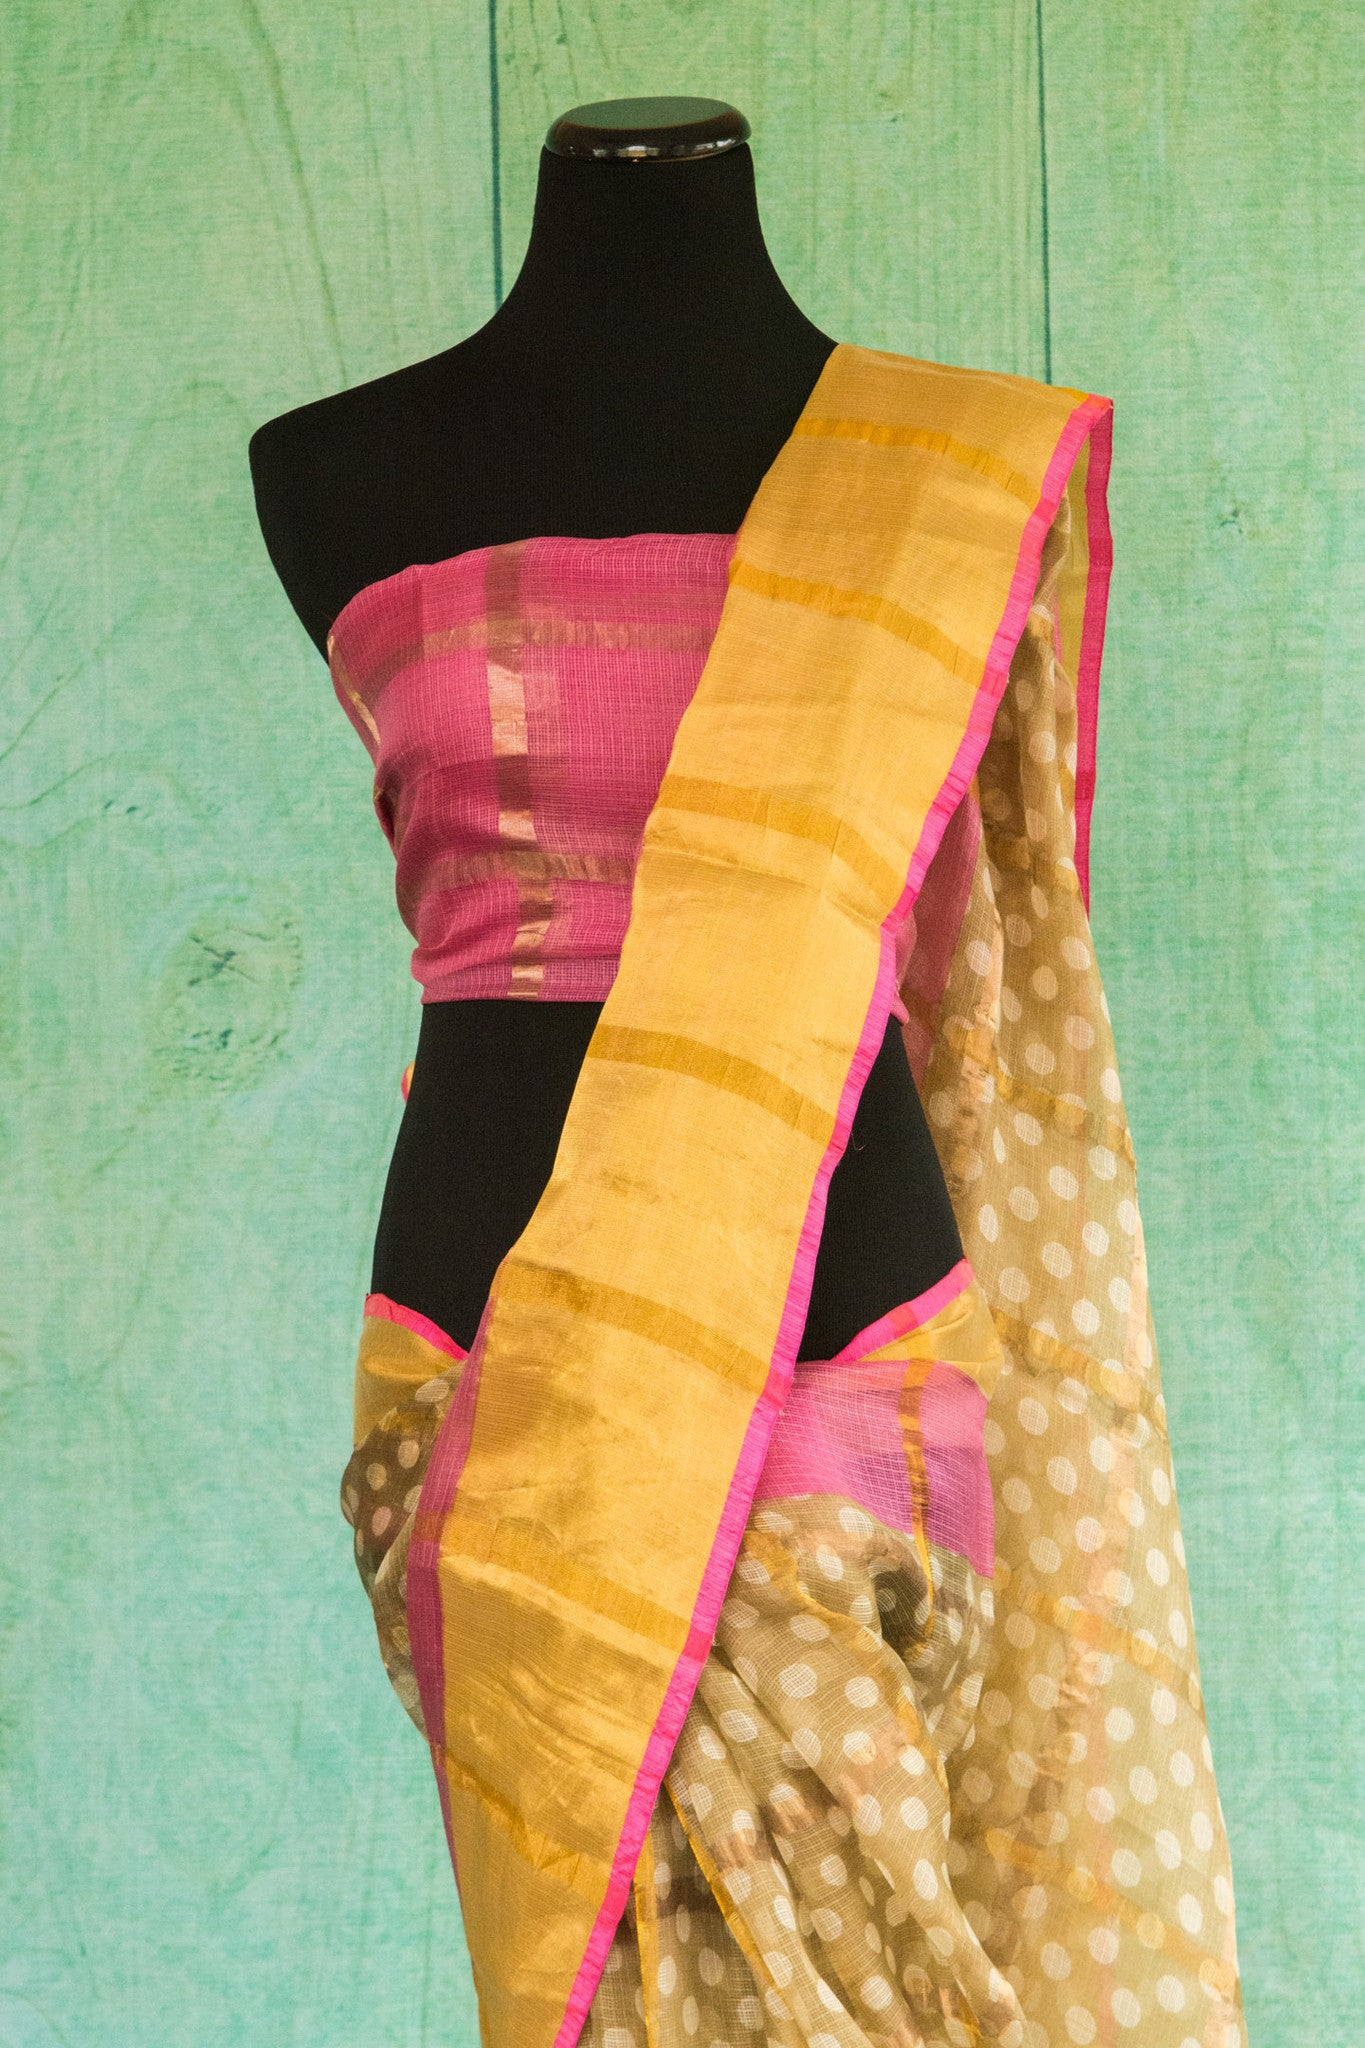 90c087 Traditional printed zari kota saree available at our Indian wear store in USA. The yellow saree with pops of pink and gold is perfect for pujas and festive occasions. The vibrant sari is absolutely swoon-worthy!